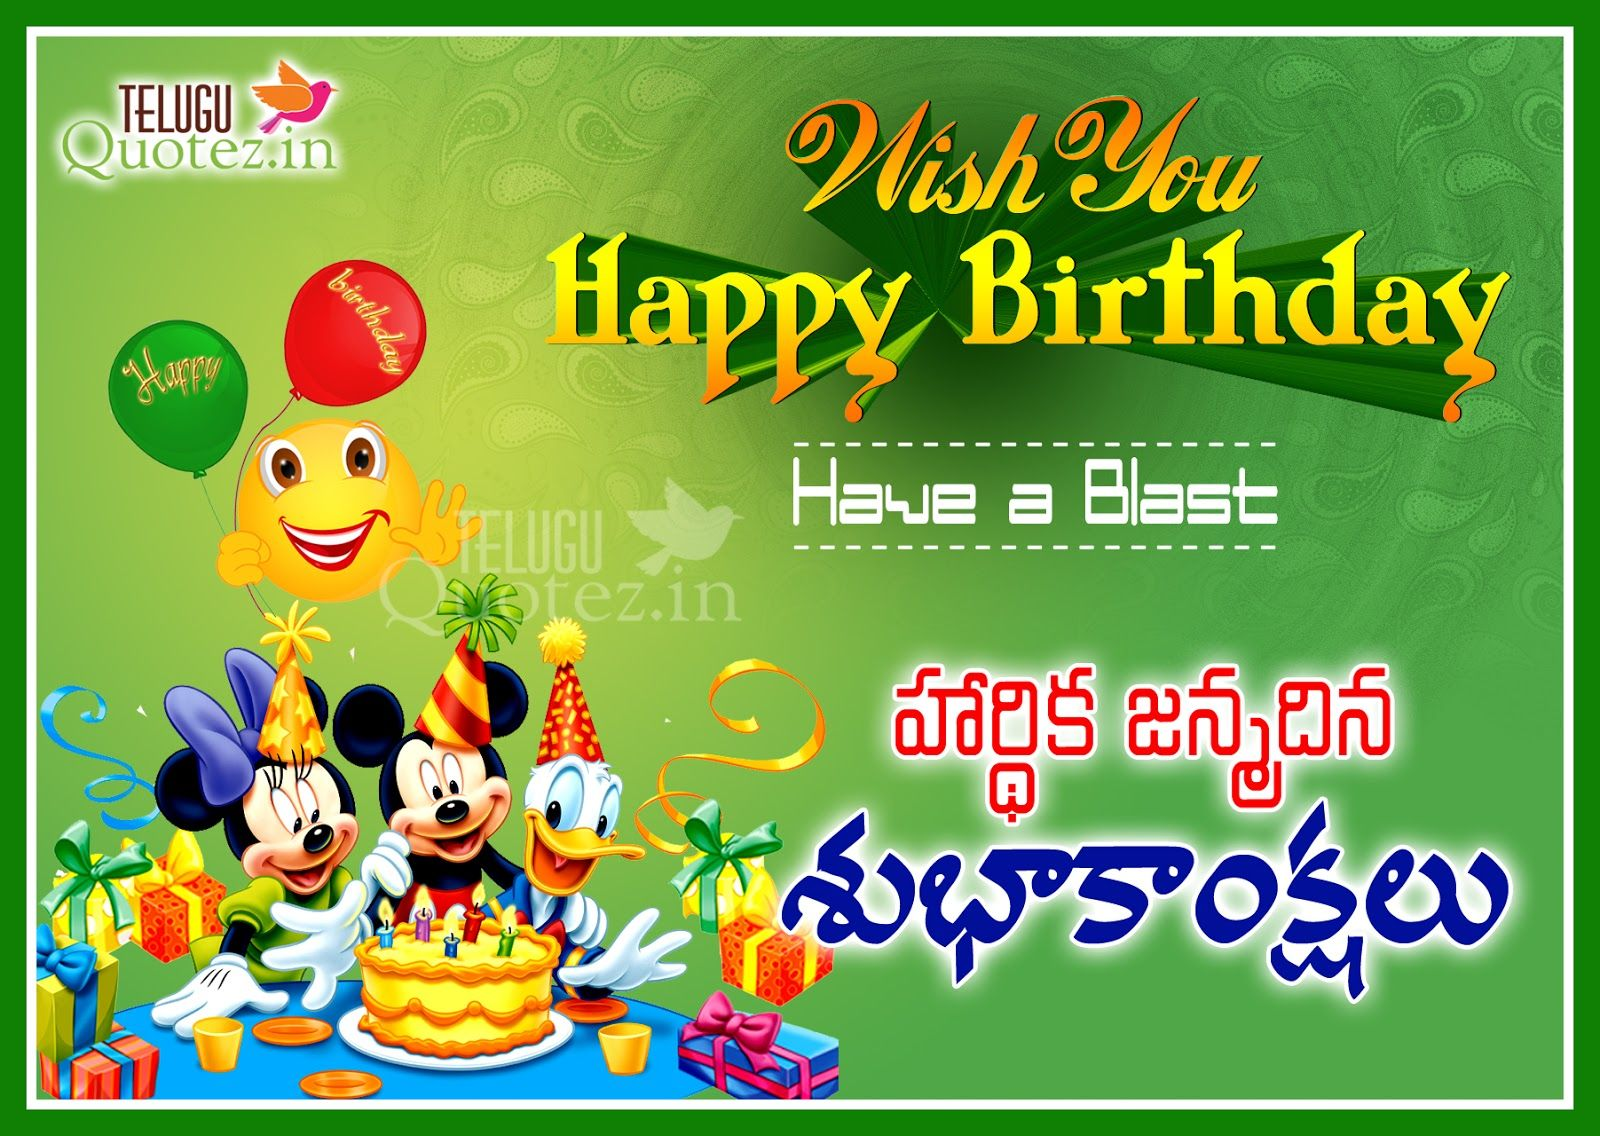 happy birthday wishes telugu quotes images